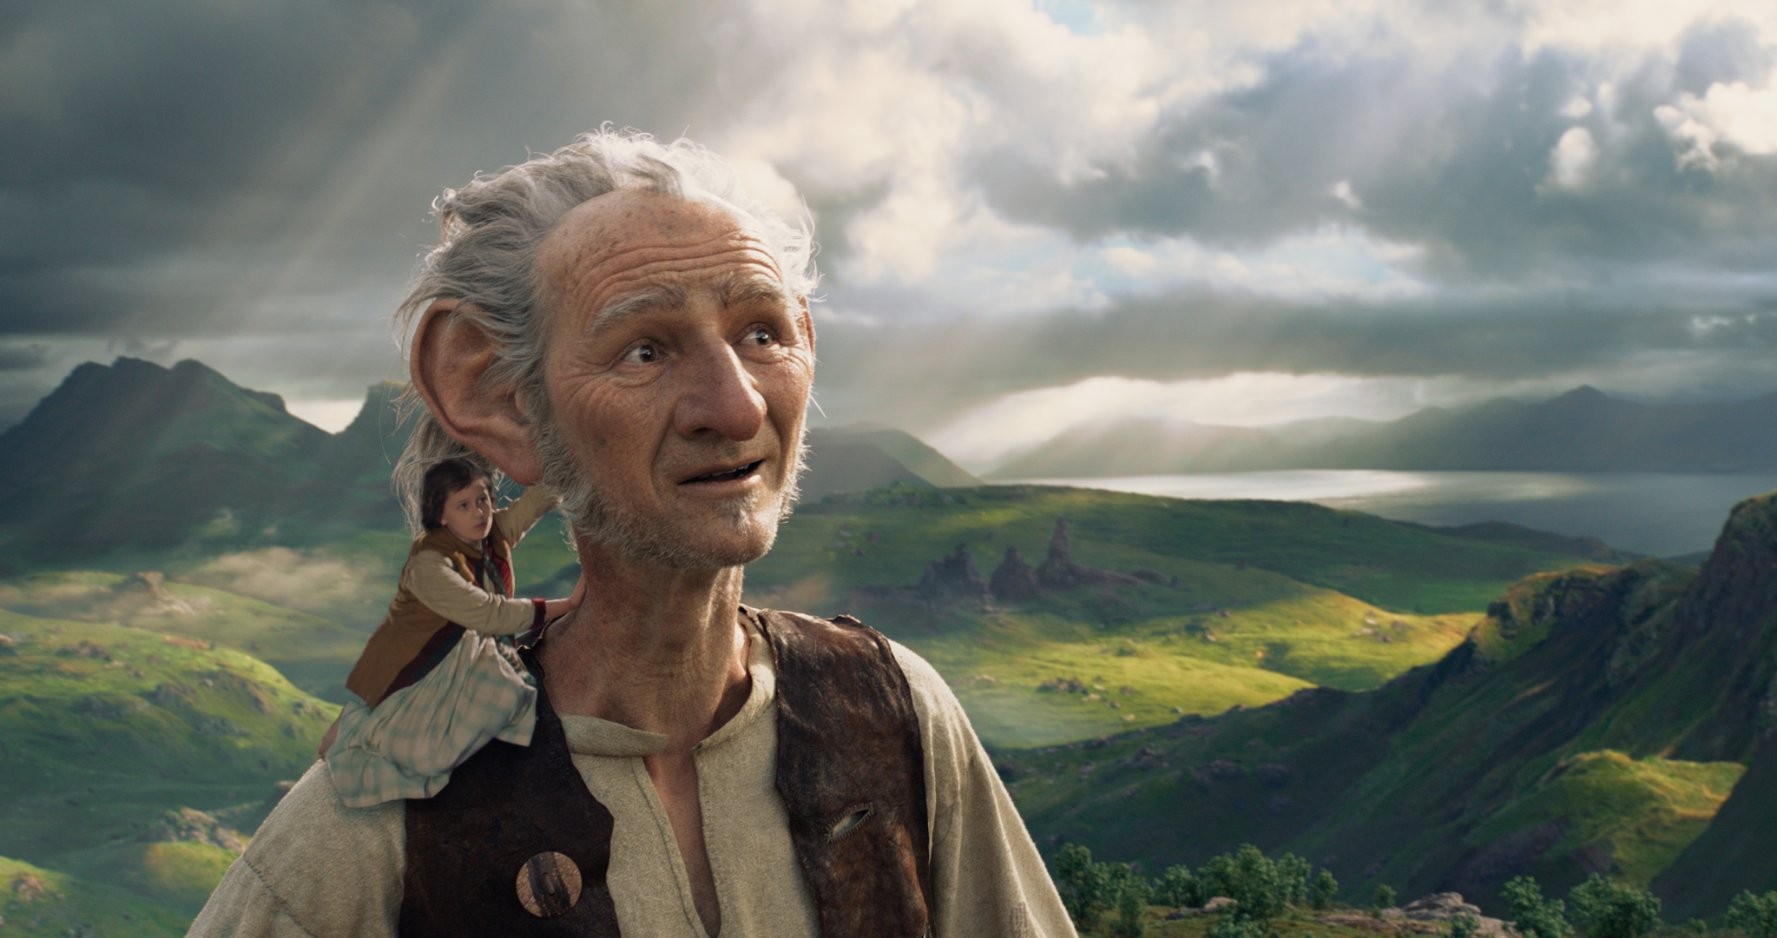 'The BFG' Is Big, Friendly, Gigantic Summer Fun